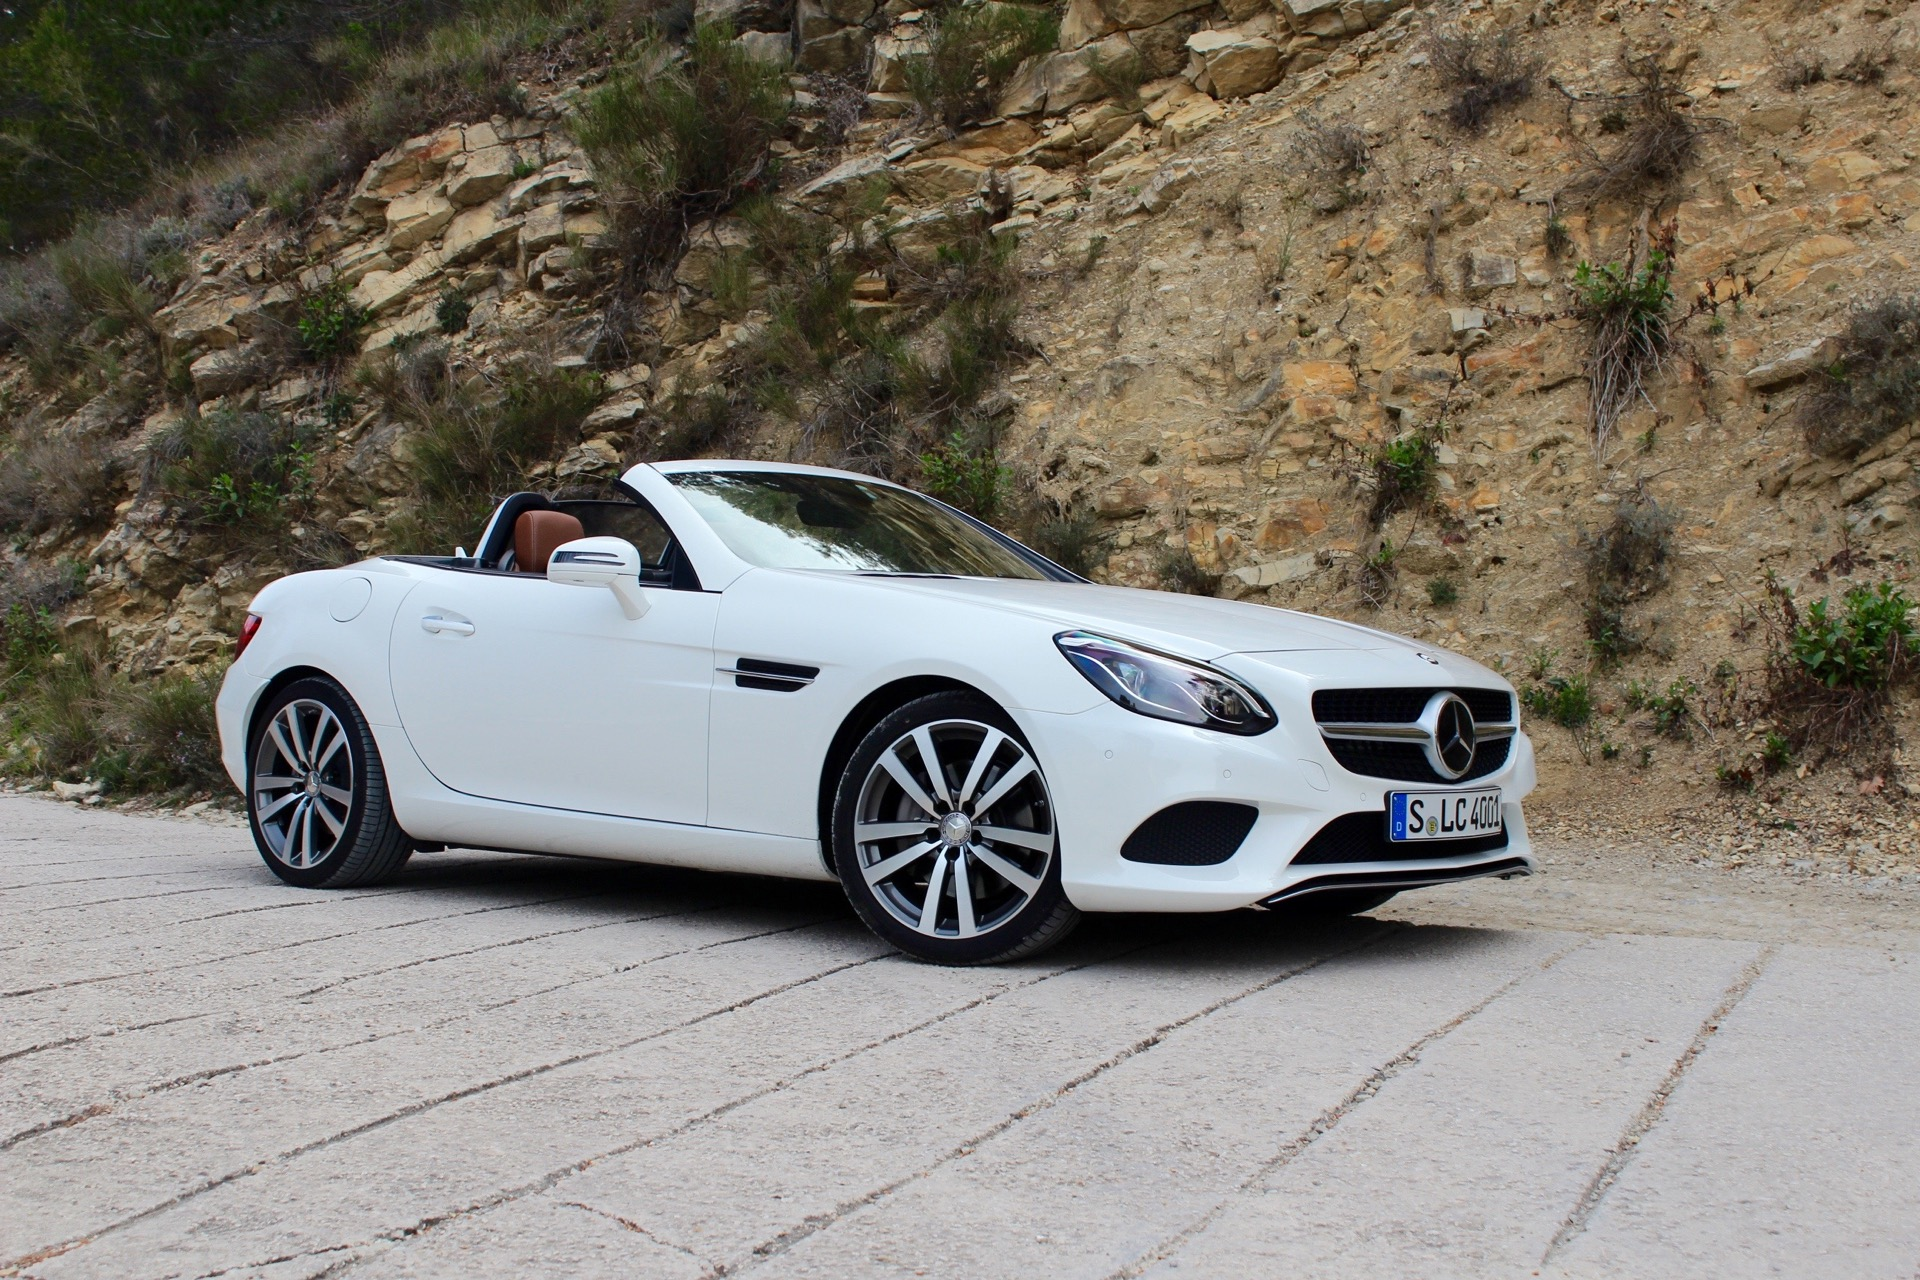 2017 mercedes benz slc first drive review for Mercedes benz new cars 2017